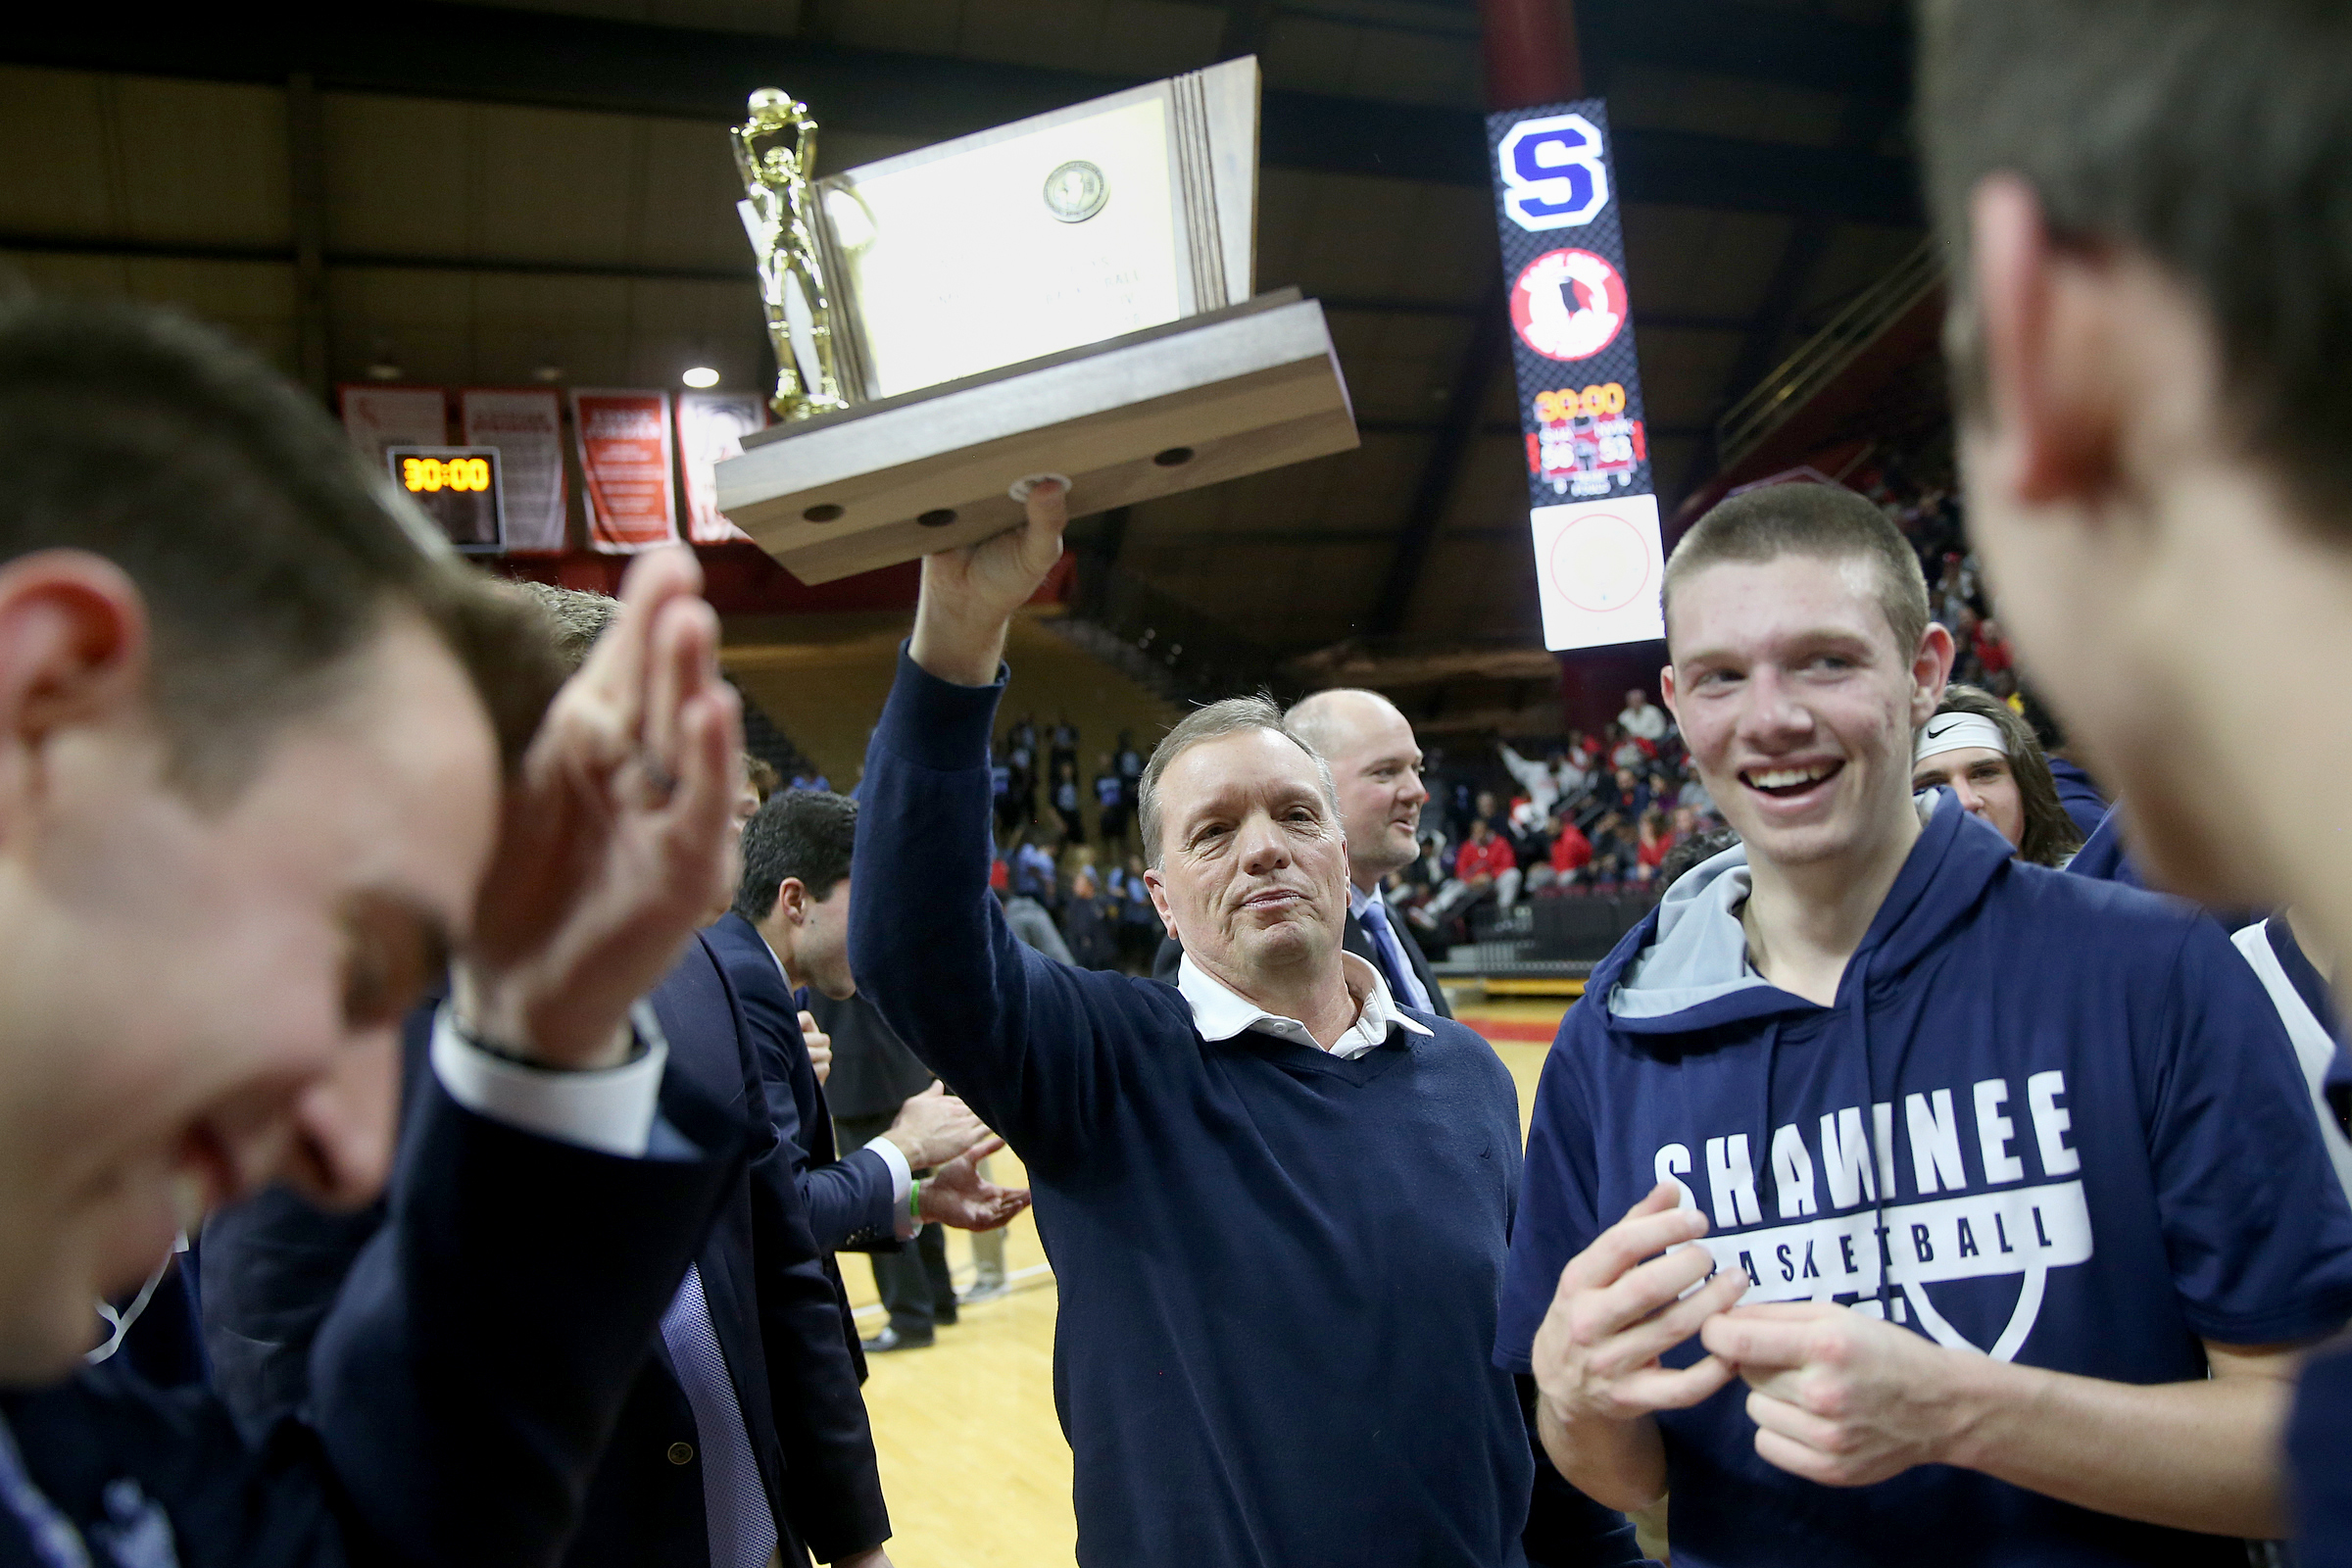 Shawnee head coach Joe Kessler and his players celebrate with the trophy after the Group 4 state championship game against Newark East Side at the Louis Brown Athletic Center.